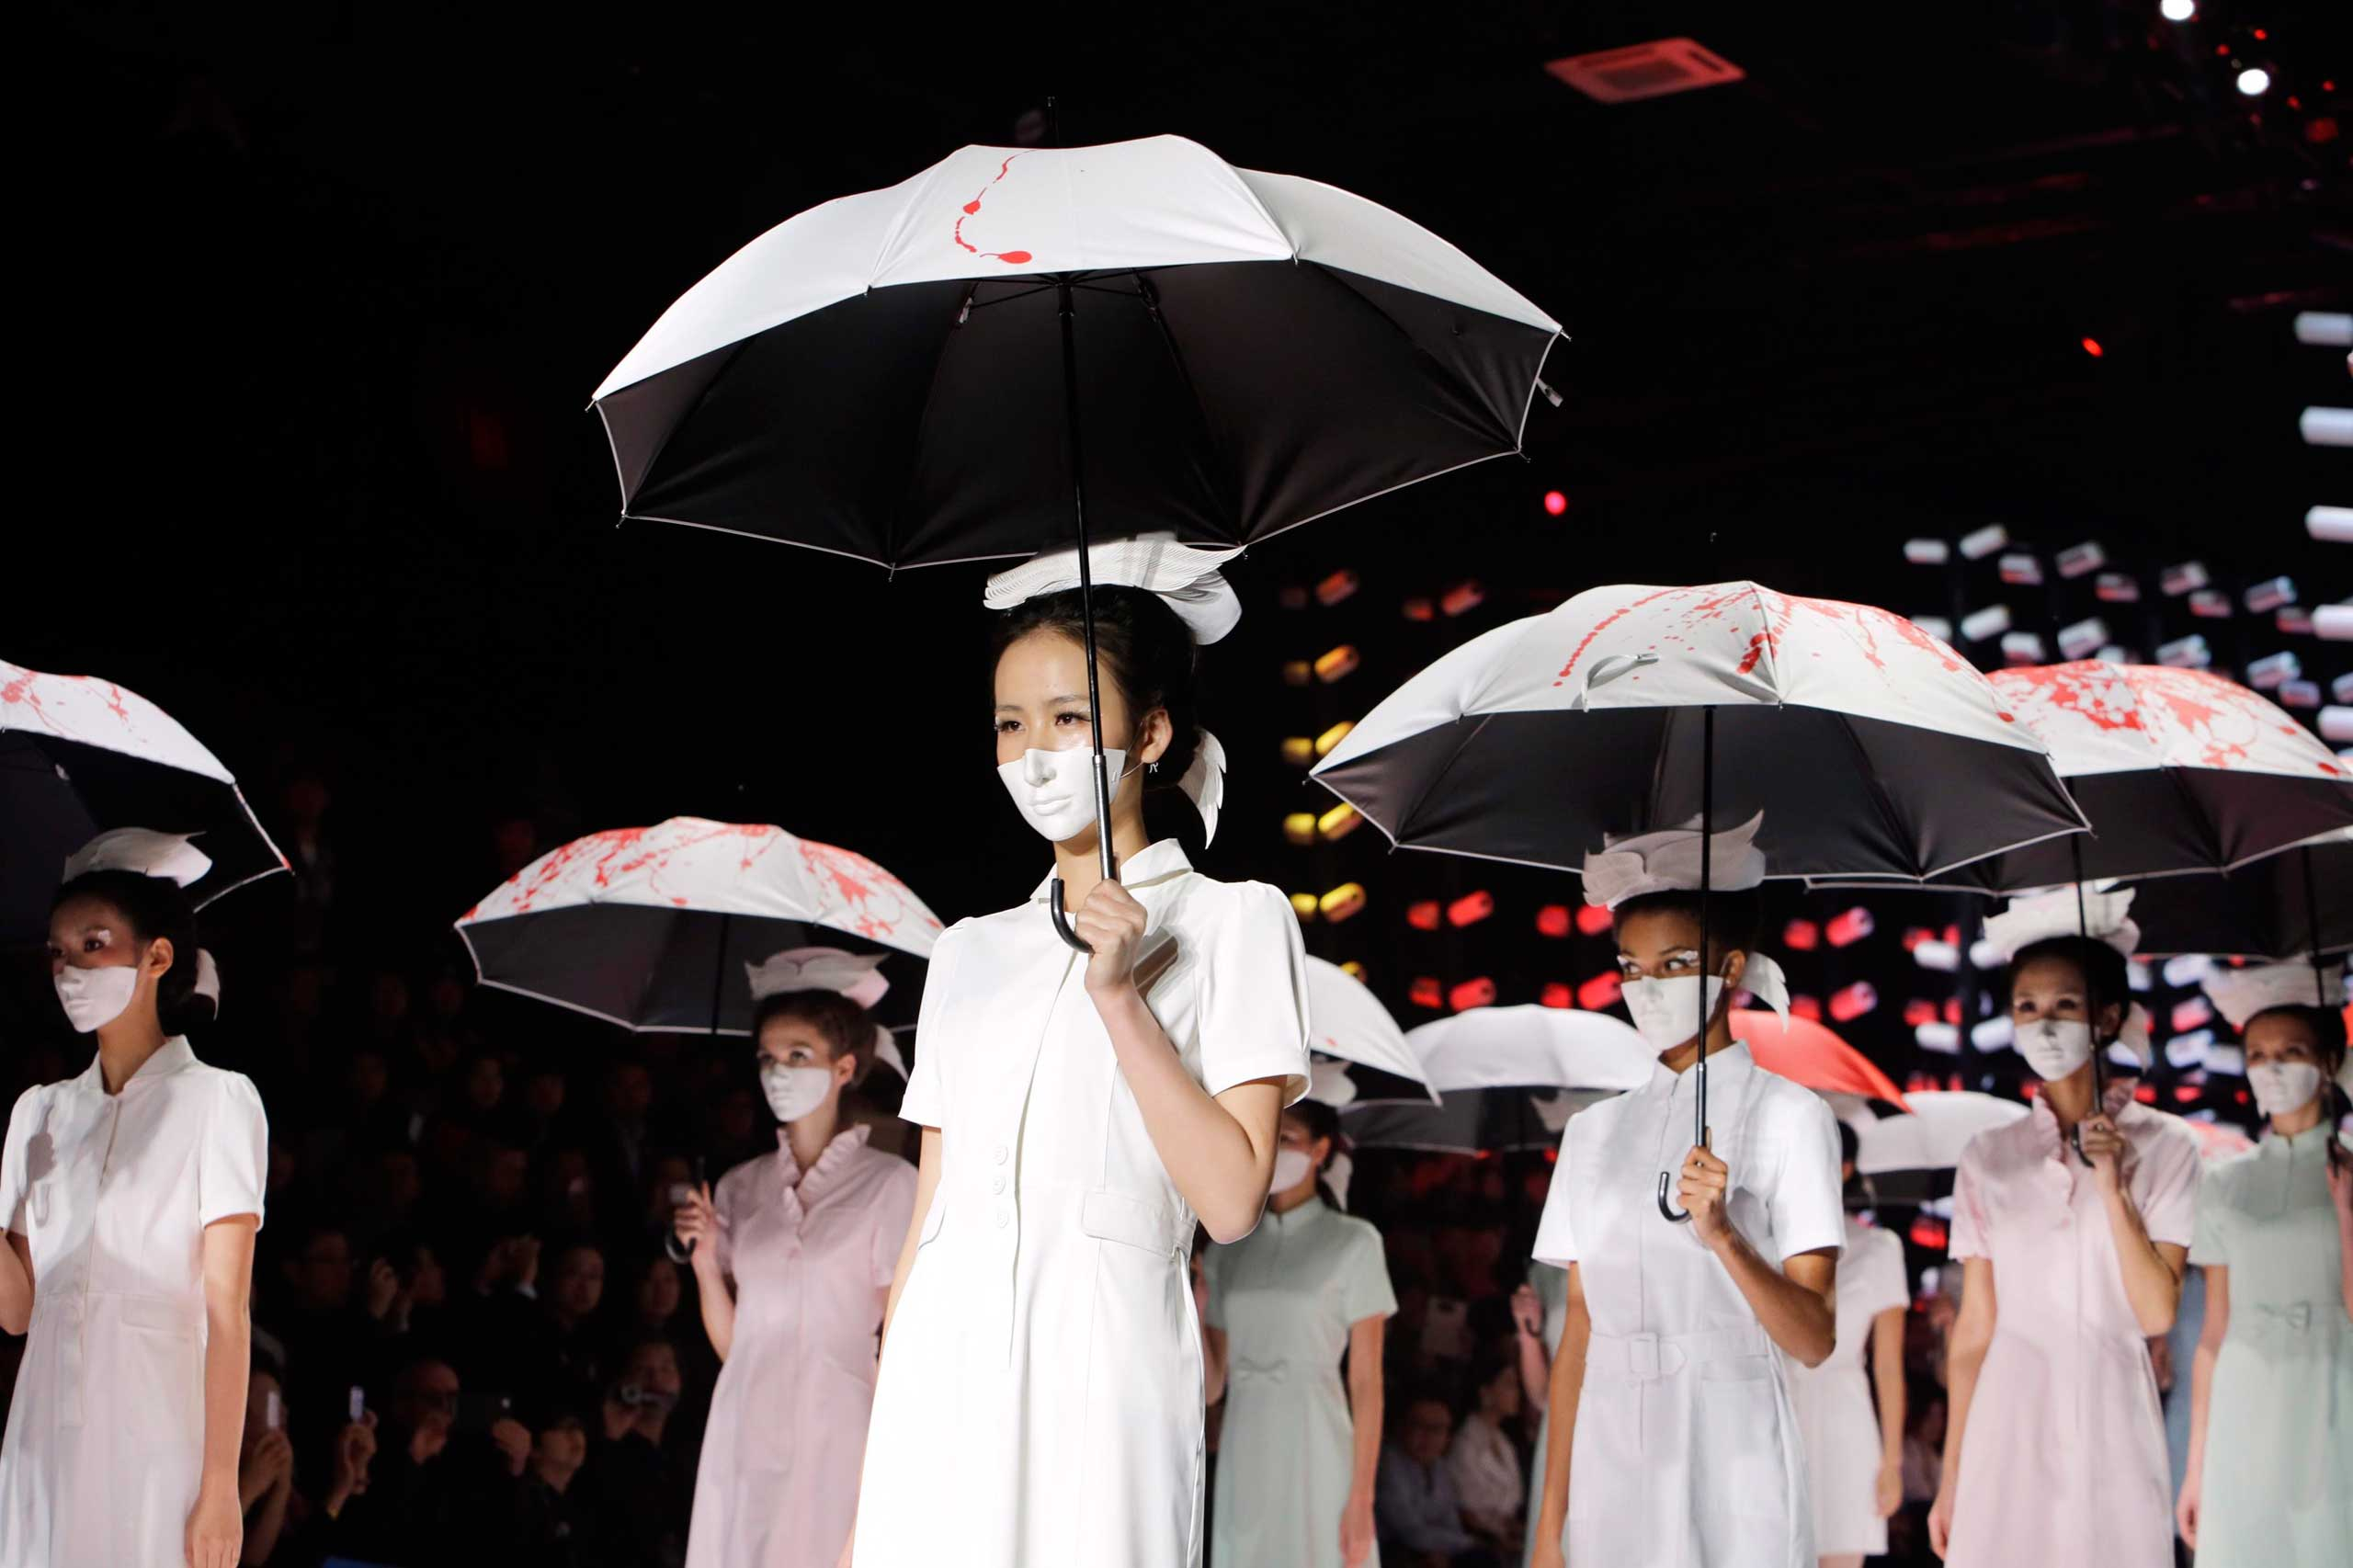 Oct. 30, 2014. Models wearing masks hold umbrellas as they perform during the Toray Liu Wei Collection segment at China Fashion Week in Beijing.